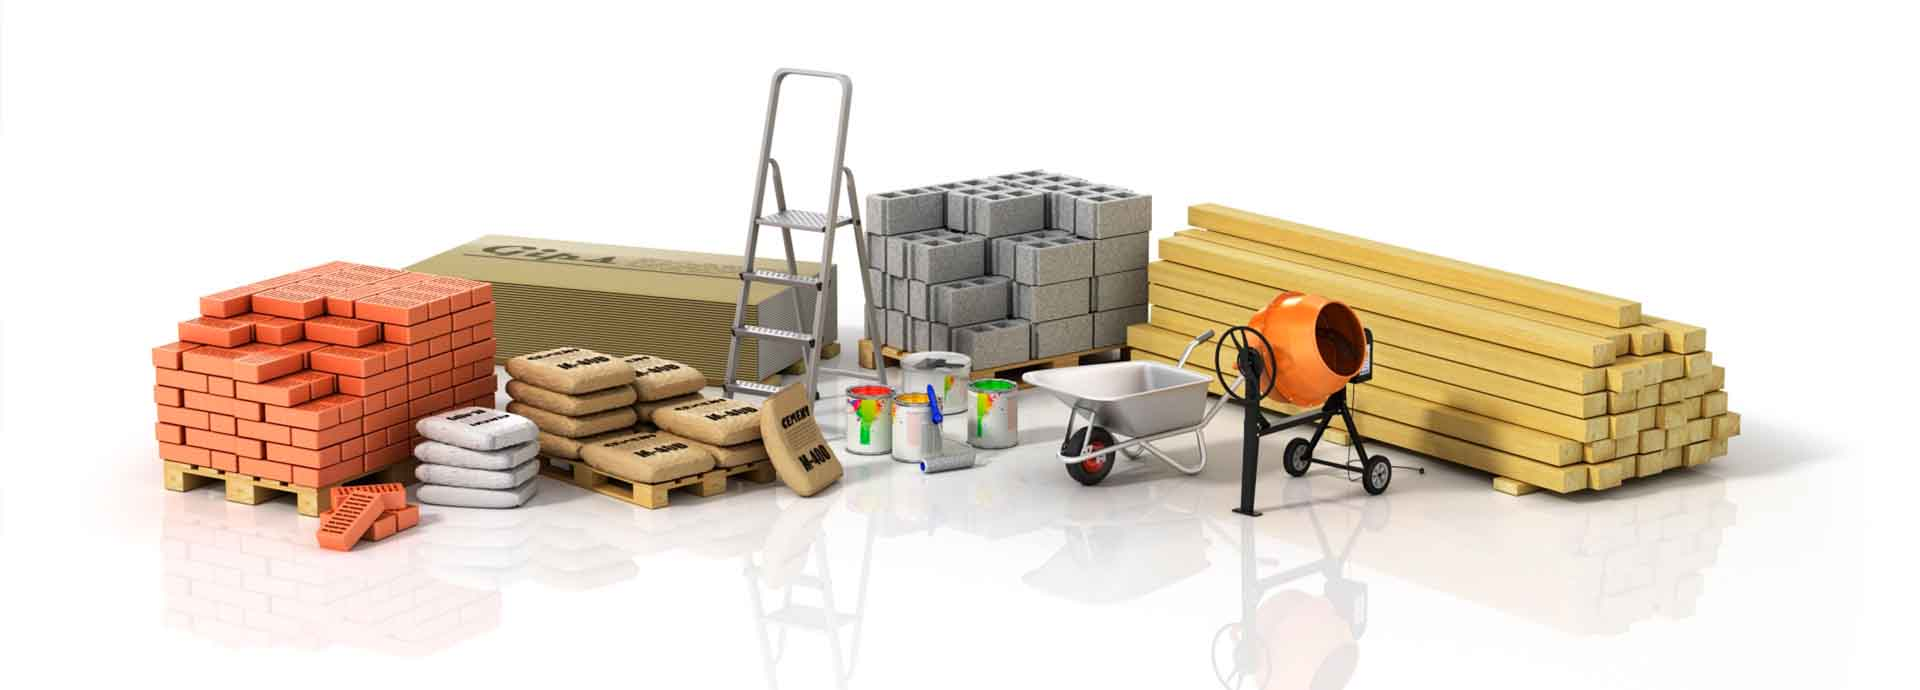 comprar_materiales_construccion_economicos